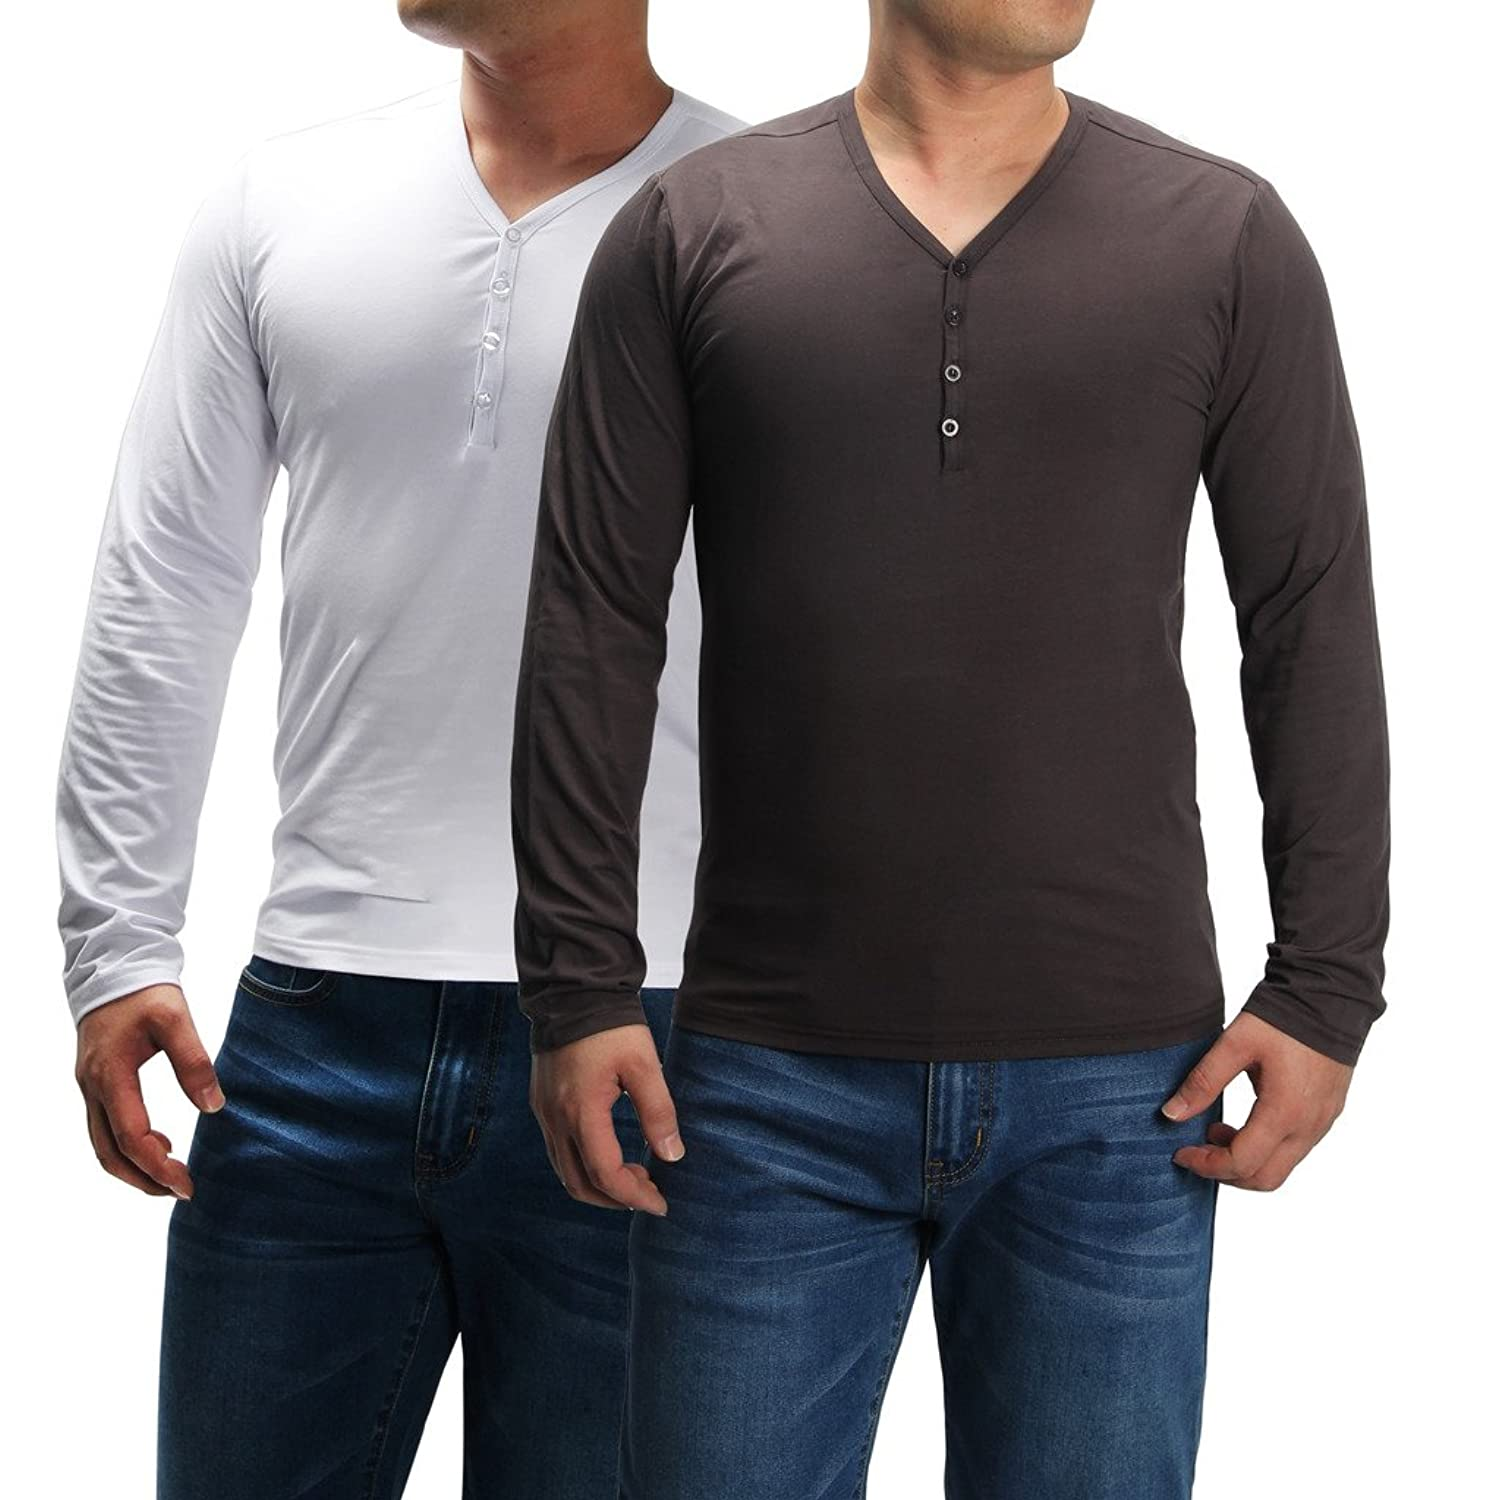 4How Men's Casual T-Shirts Long Sleeves Undershirt